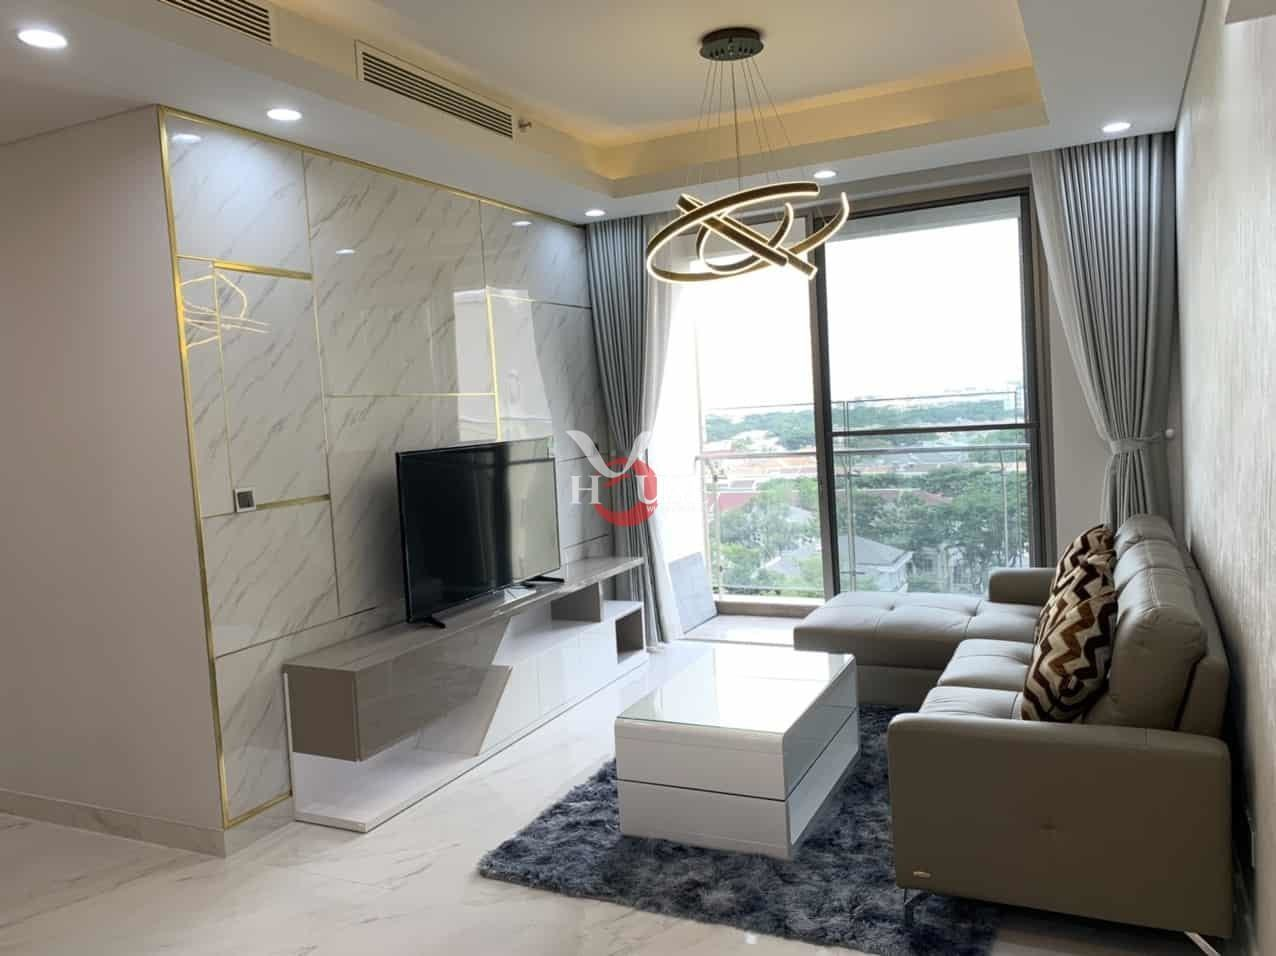 Midtown apartment for rent in phu my hung district 7 (1)